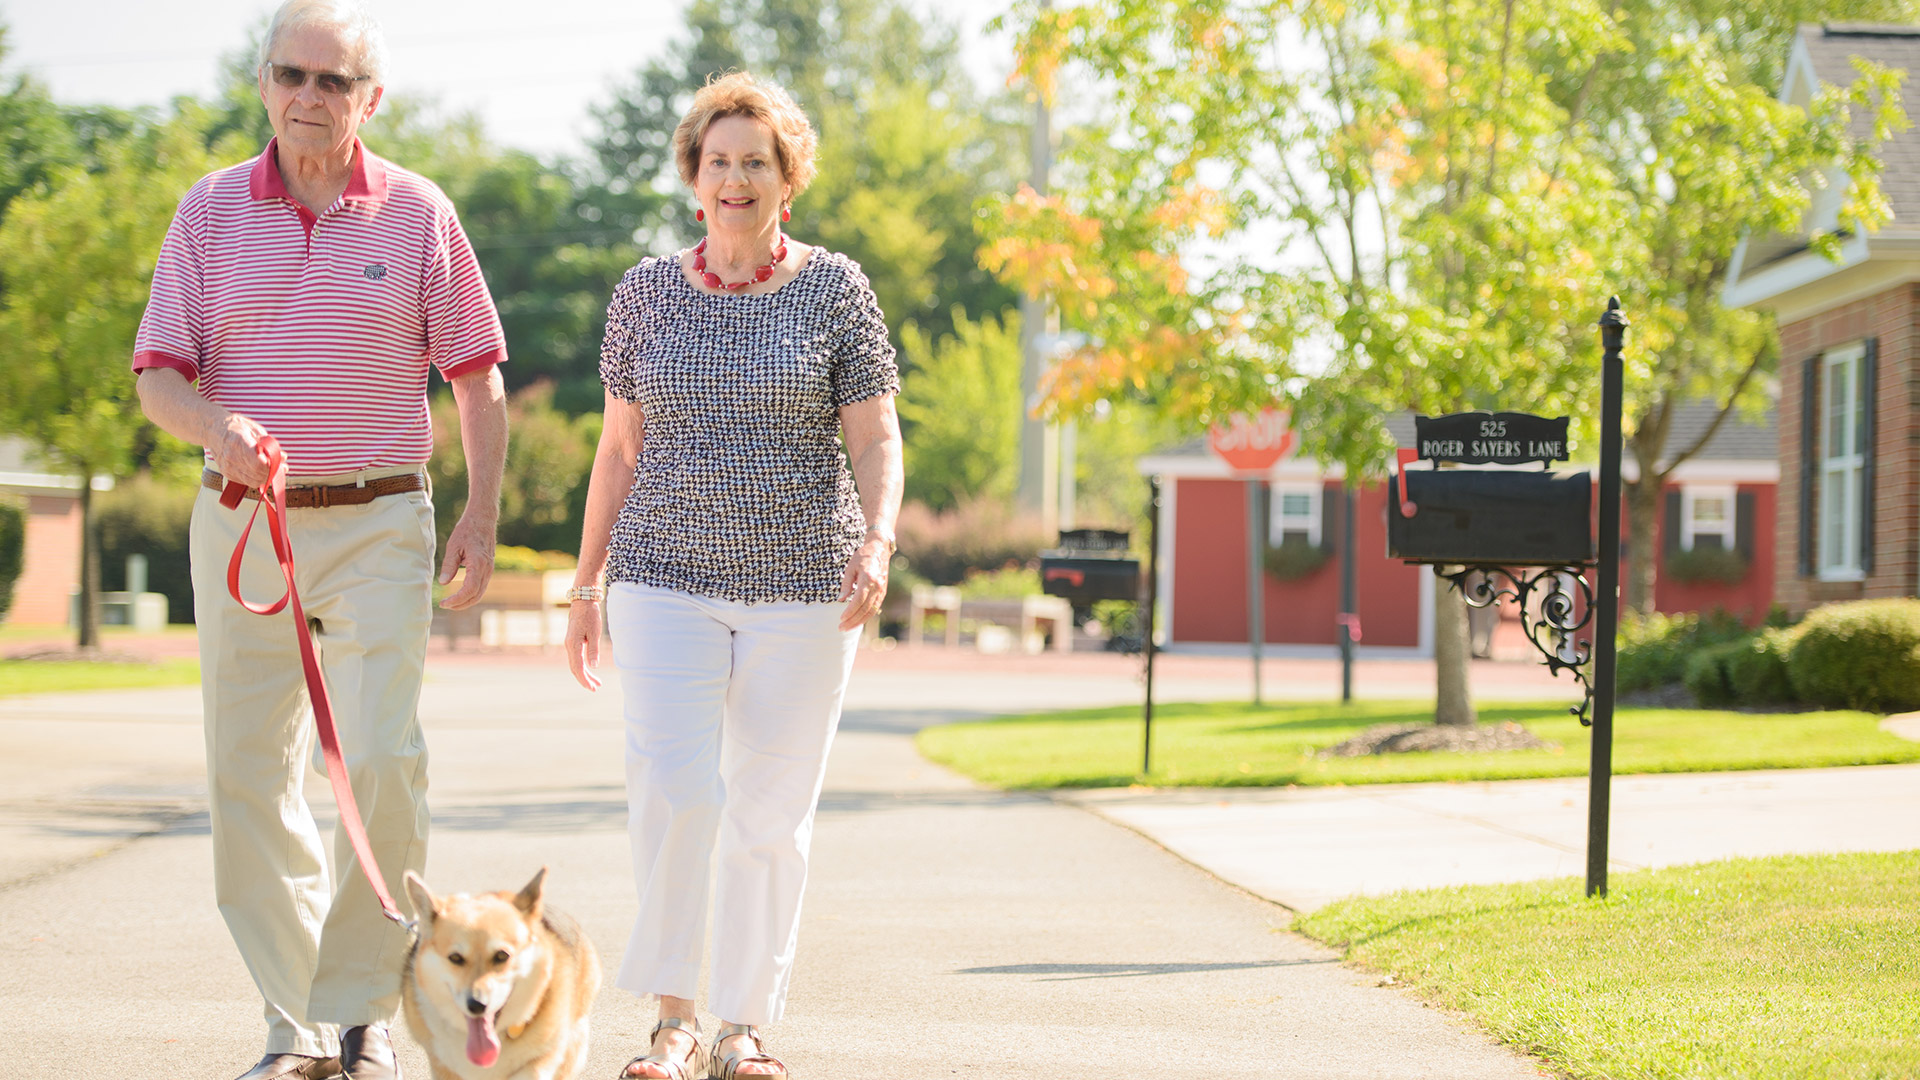 A smiling Caucasian couple walk a dog through a neighborhood